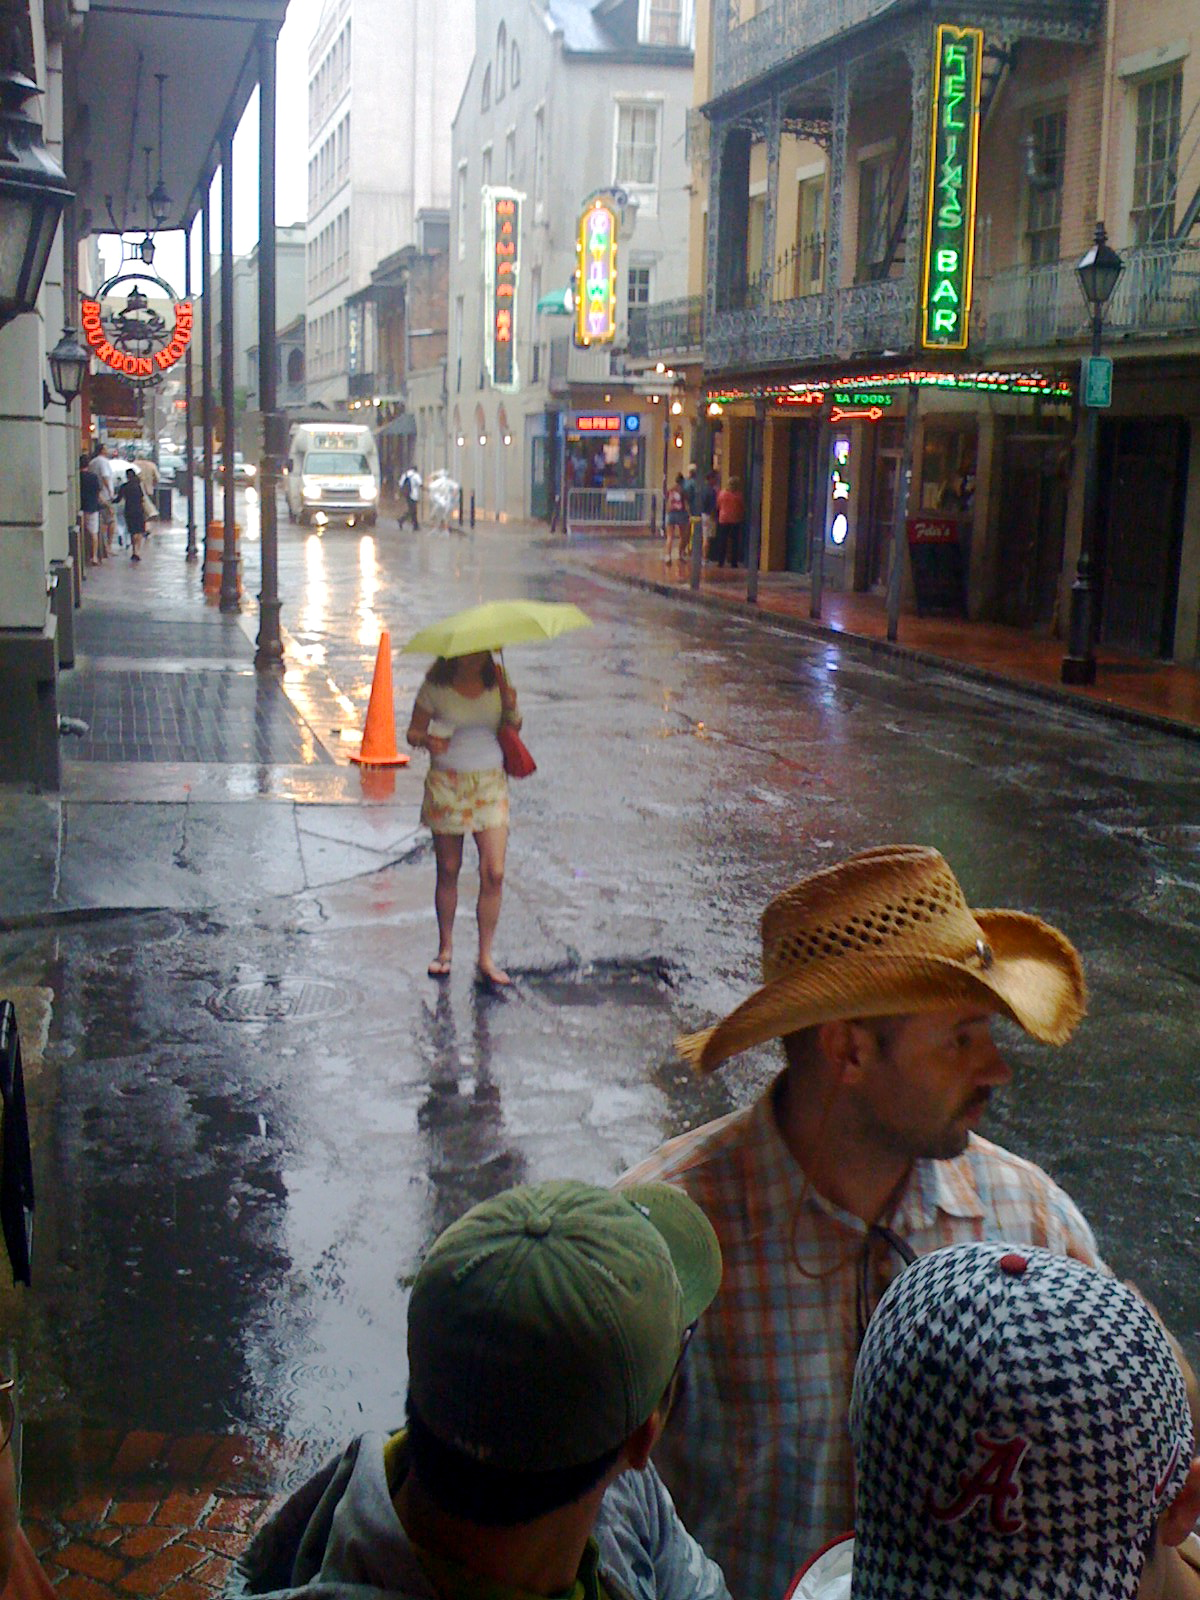 File:A rainy day on Iberville Street, New Orleans Umbrella.jpg - Wikimedia Commons